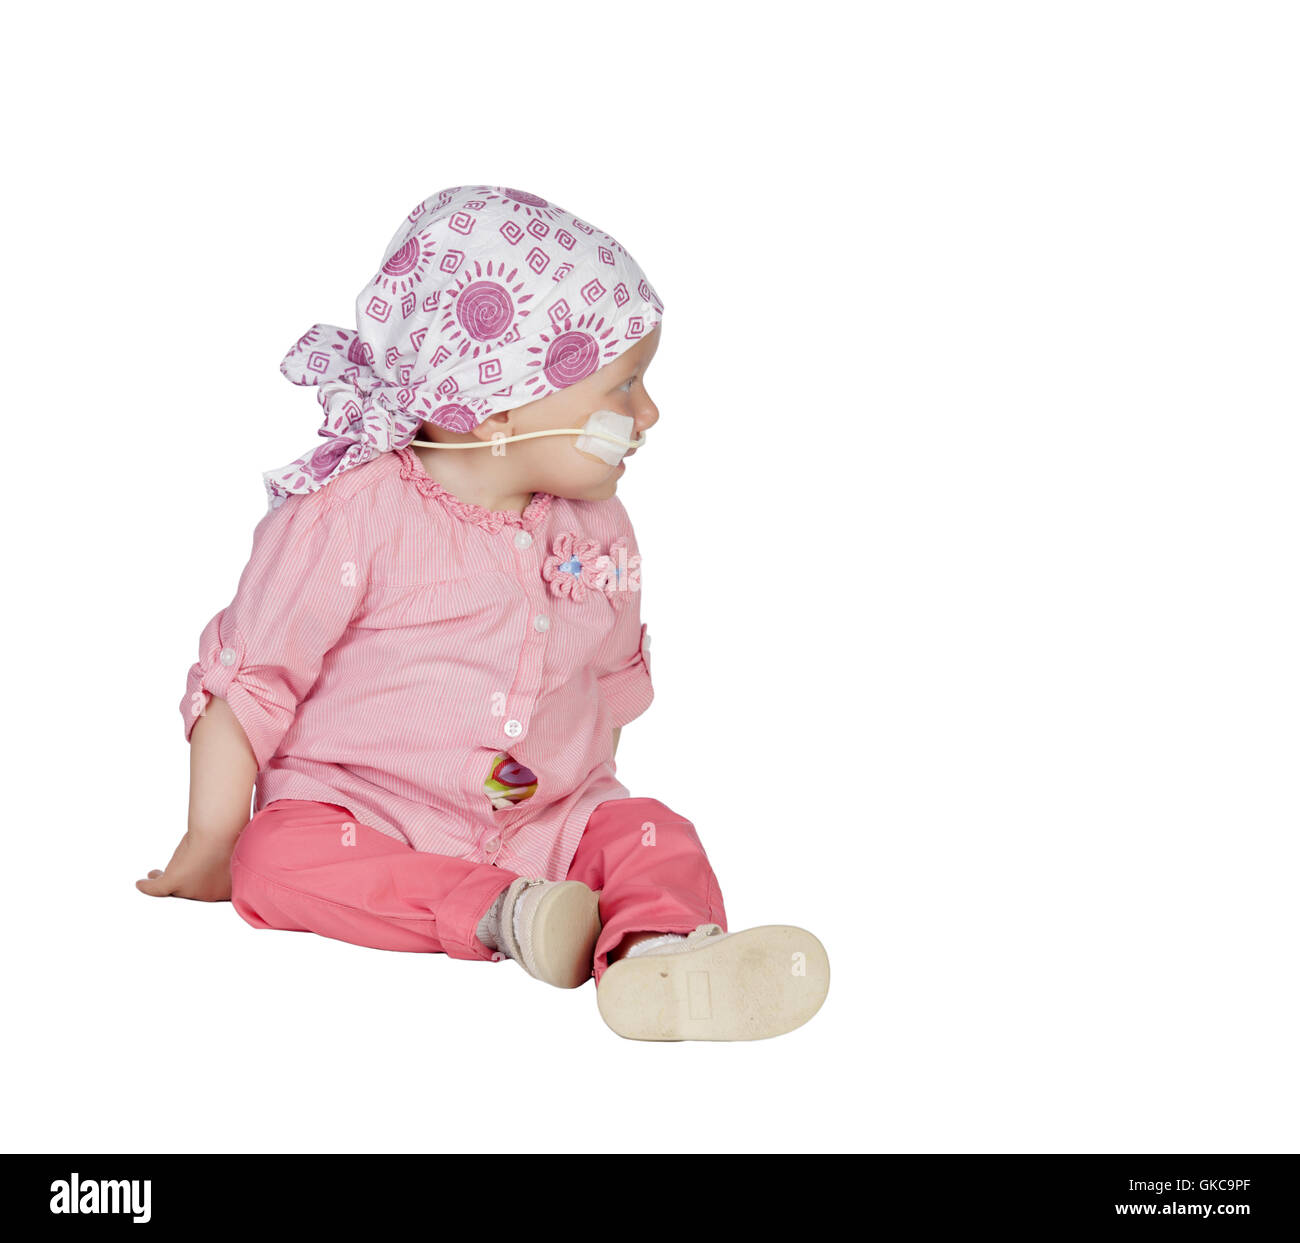 baby cancer therapy - Stock Image